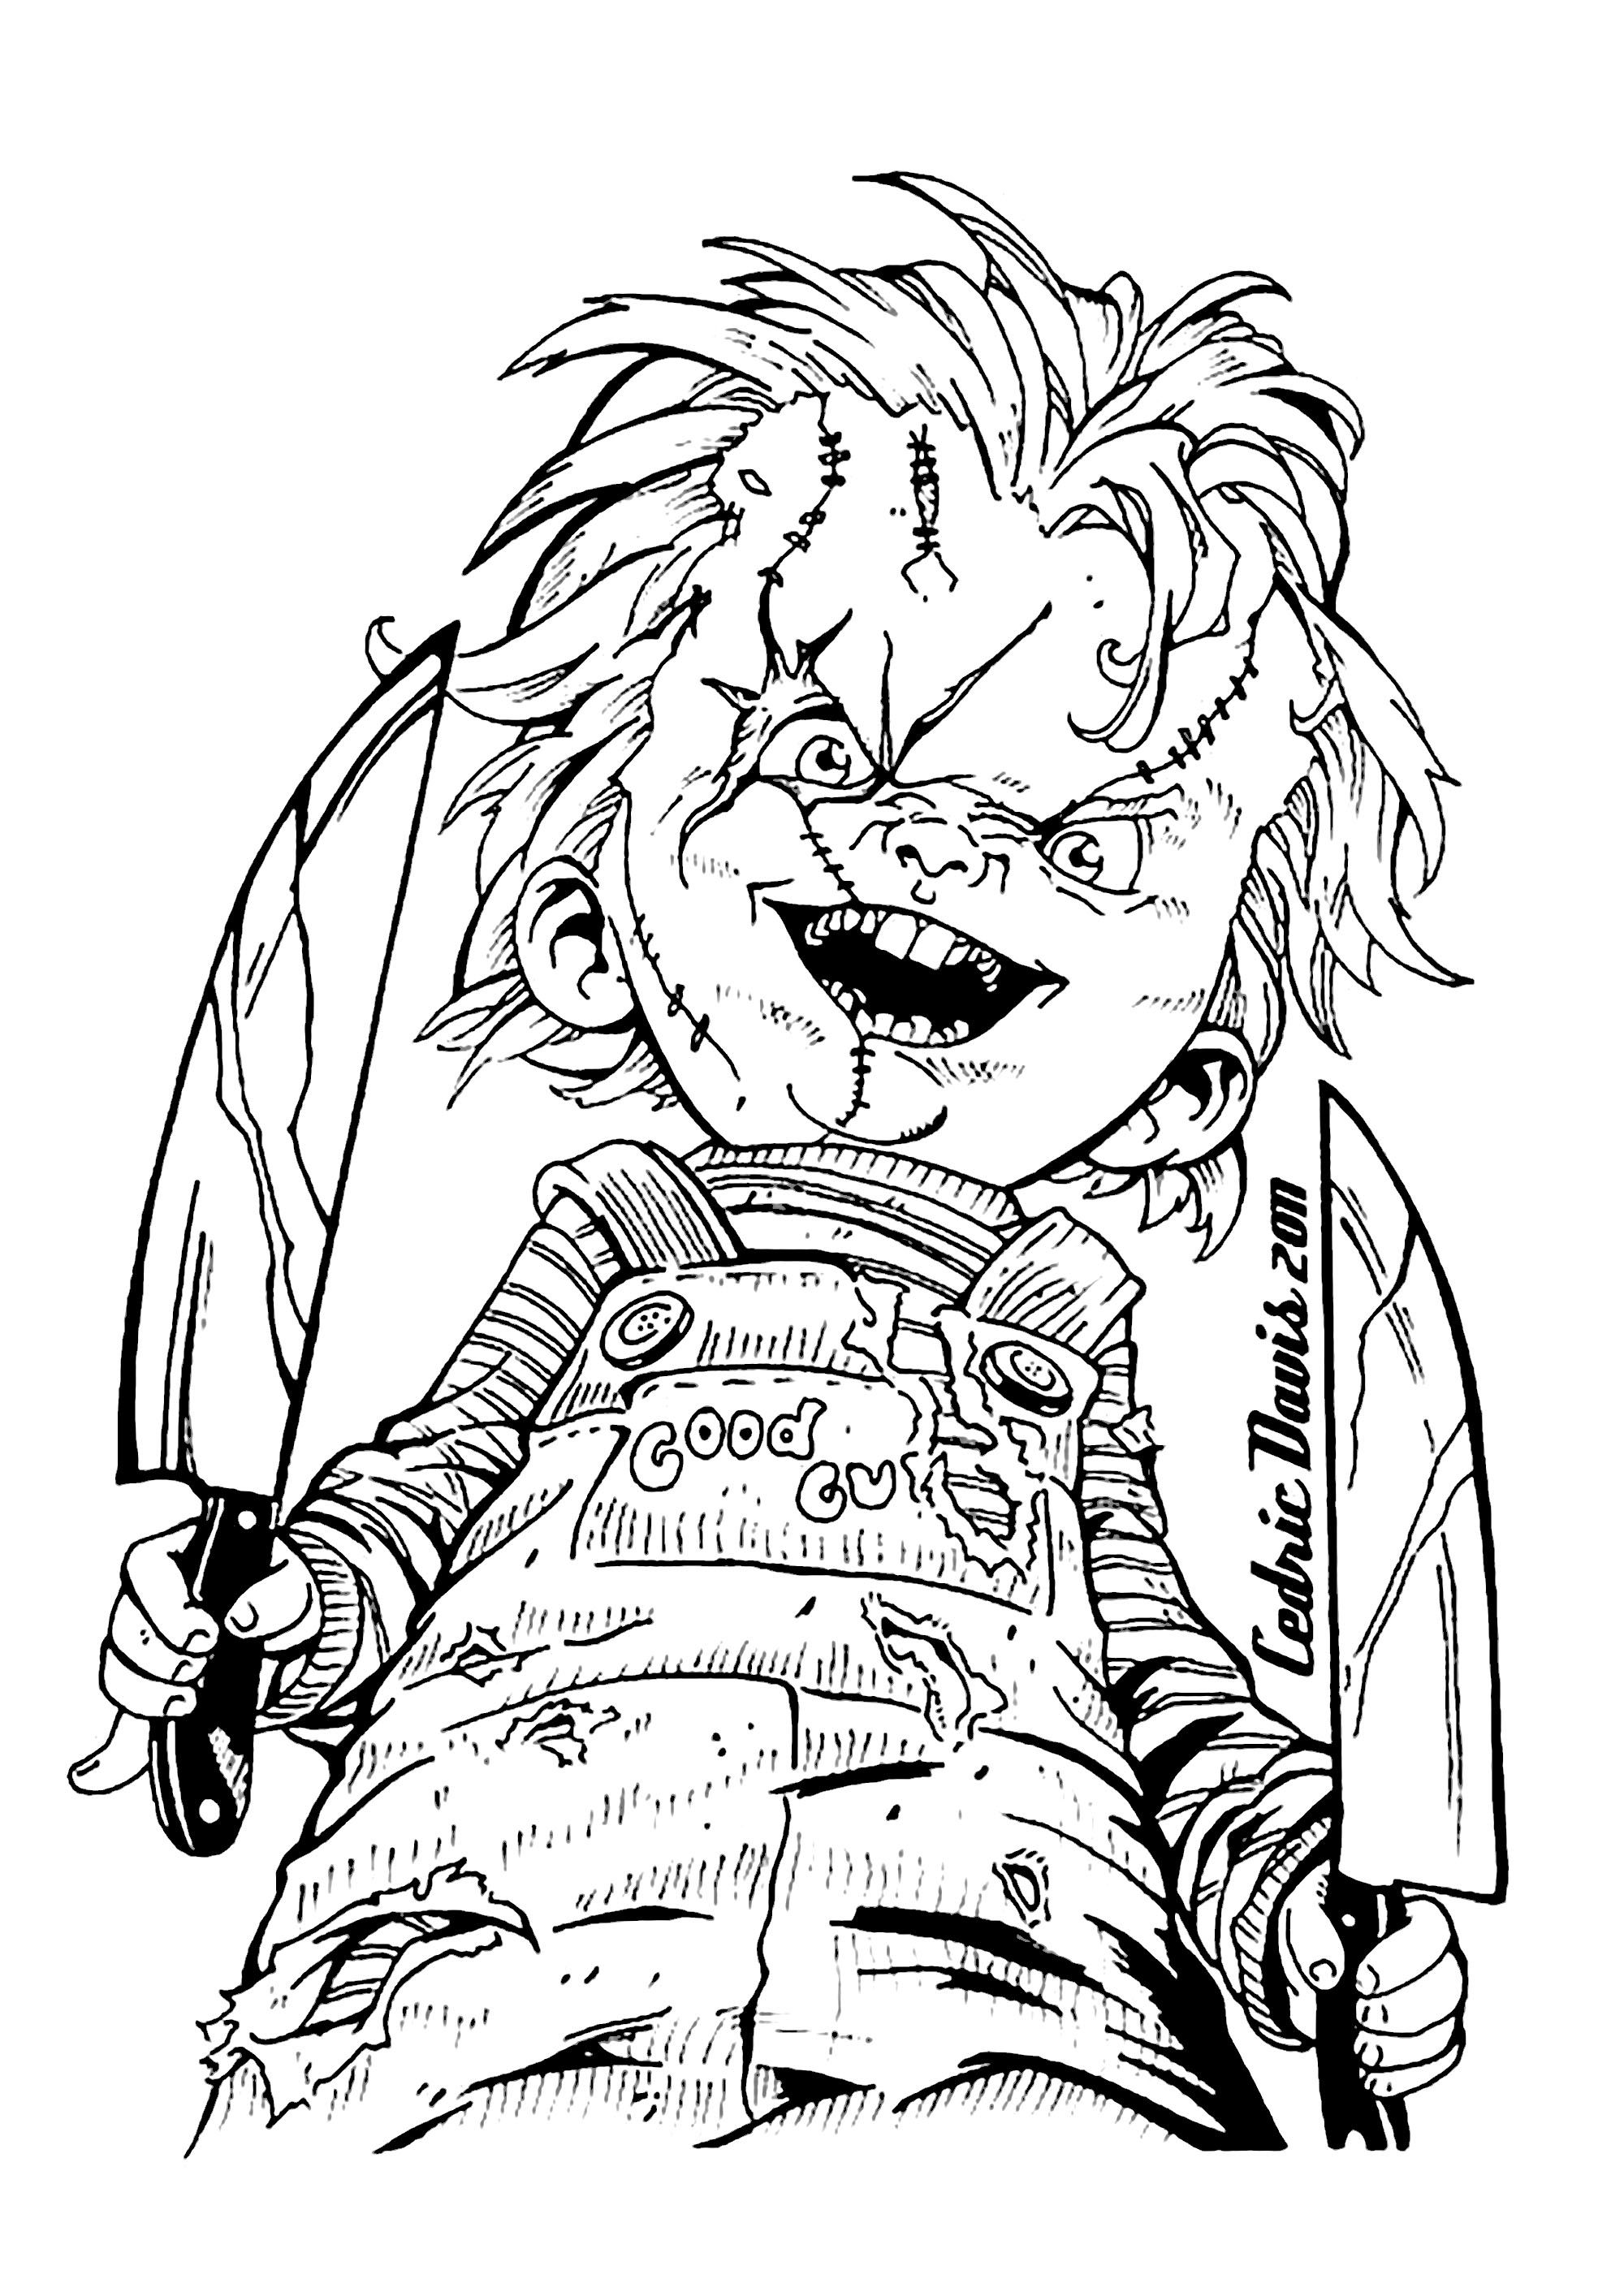 Color This Scary Chucky Coloring Page For Halloween From The Gallery Halloween Scary Coloring Pages Halloween Coloring Pages Halloween Coloring